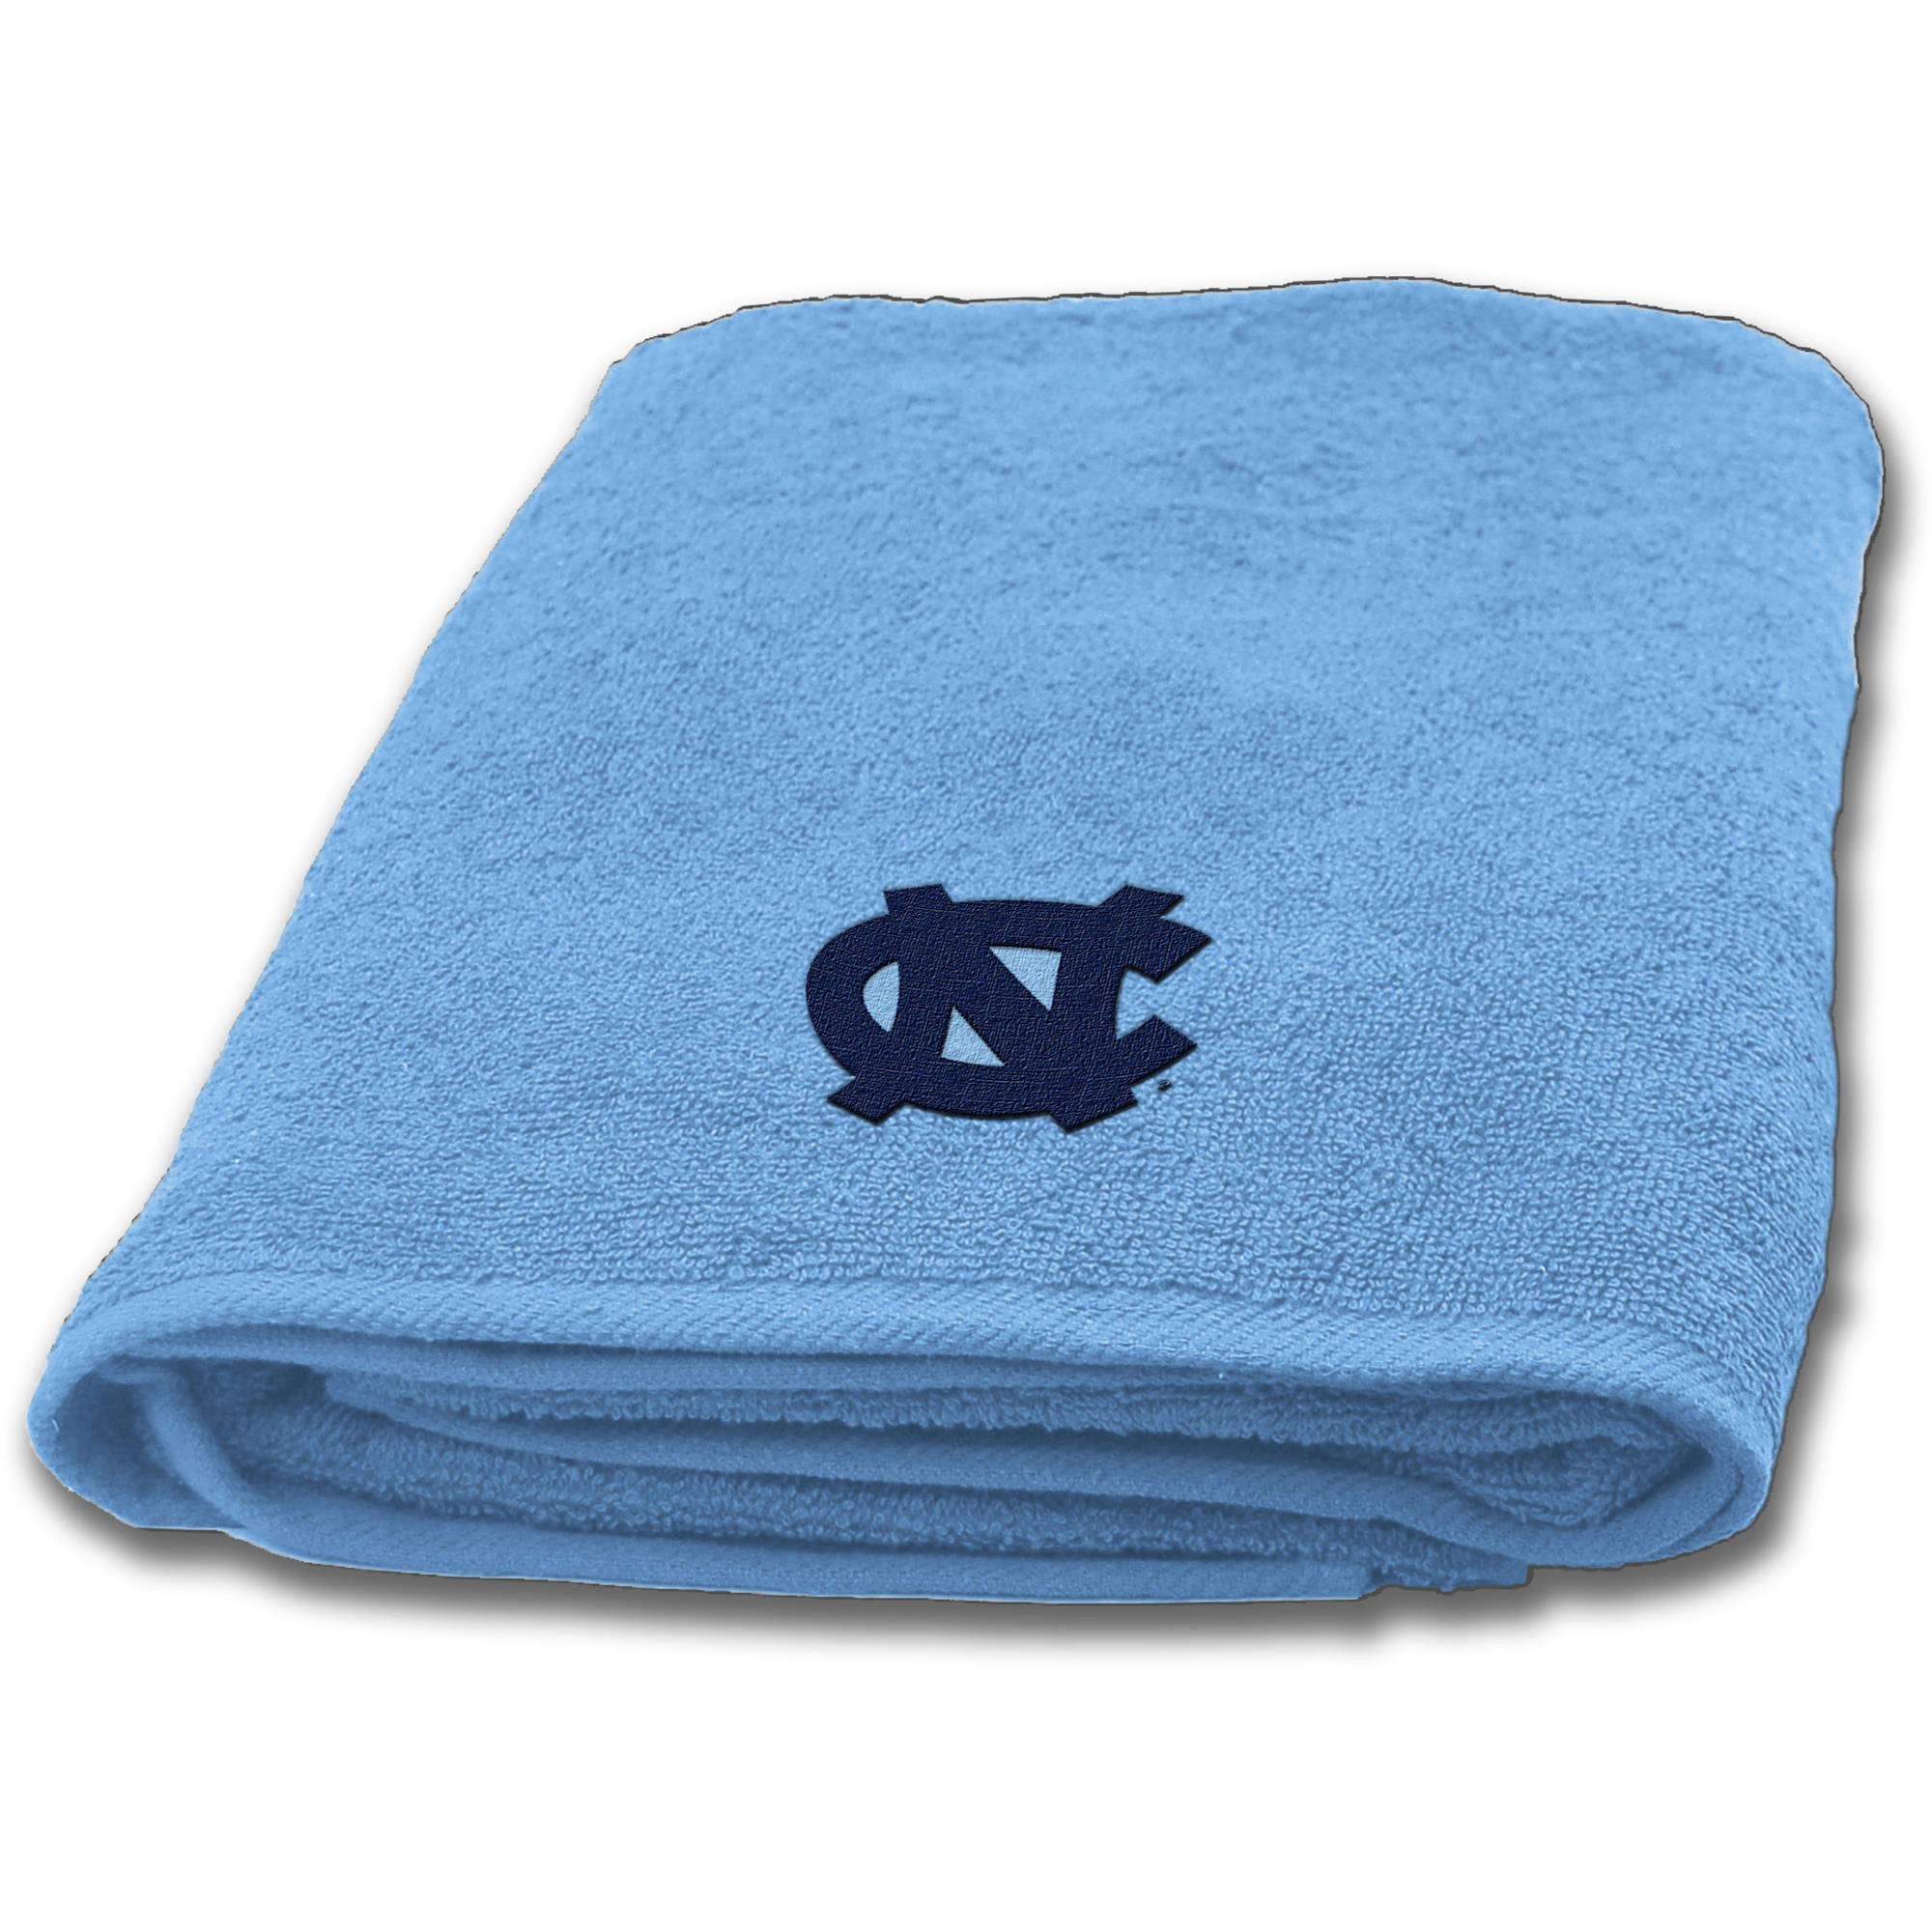 NCAA University of North Carolina Decorative Bath Collection - Bath Towel